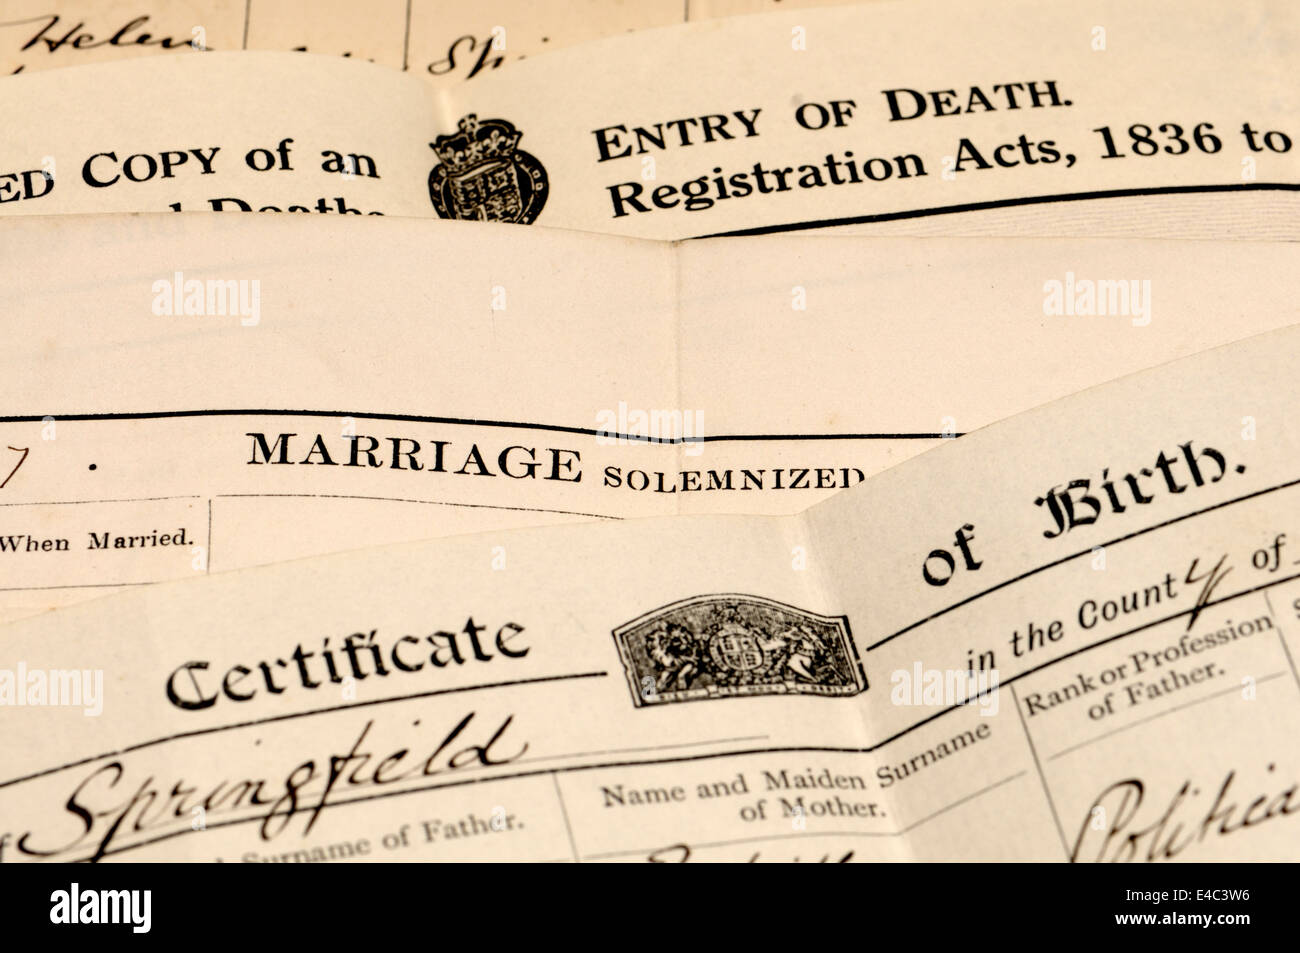 Certified copies of Birth, Marriage and Death registers - Stock Image